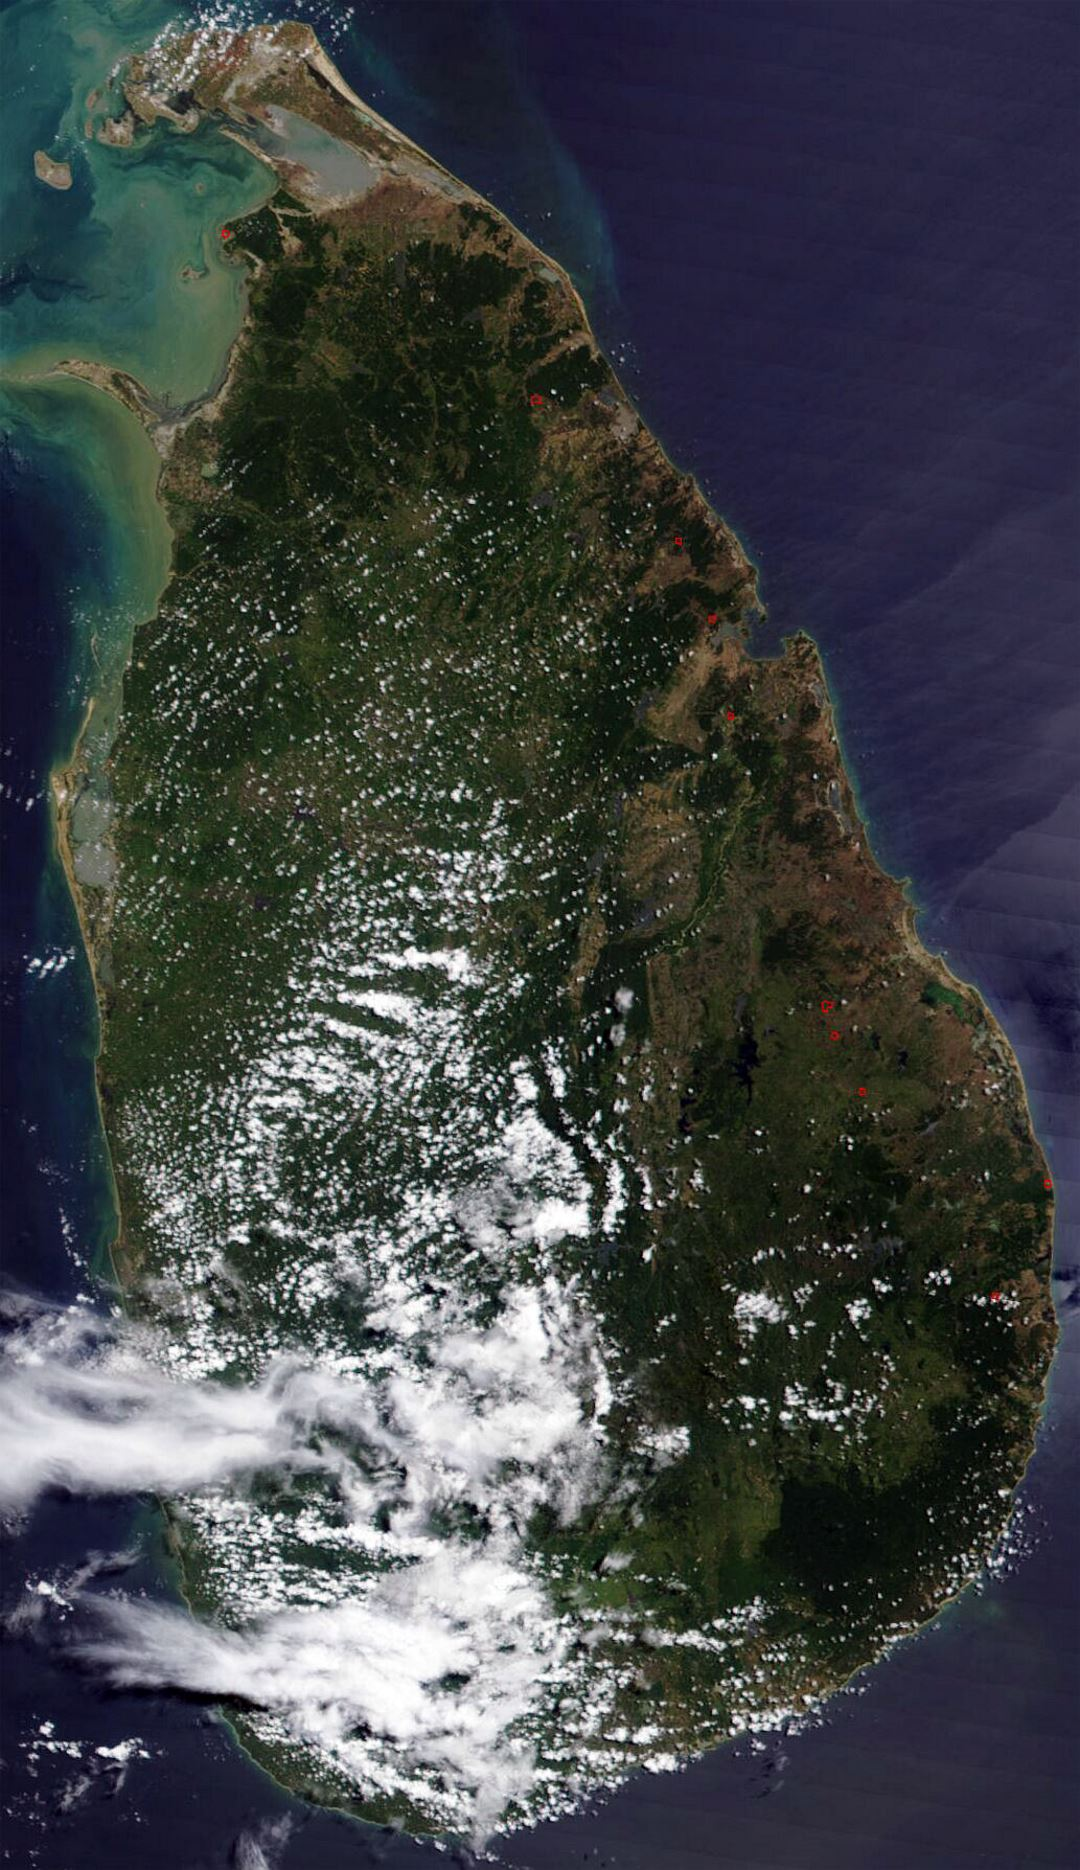 Large satellite map of Sri Lanka | Sri Lanka | Asia ... on satellite map of the vatican, satellite map of trinidad and tobago, satellite map of haiti, satellite map of cebu island, satellite map of abu dhabi, satellite map of iraq, satellite map of qatar, satellite map of kosovo, satellite map of czech republic, satellite map of mali, satellite map of brunei darussalam, satellite map of united states of america, satellite map of vatican city, satellite map of saipan, satellite map of tunisia, satellite map of iceland, satellite map of quezon city, satellite map of somalia, satellite map of caribbean islands, satellite map of eastern europe,